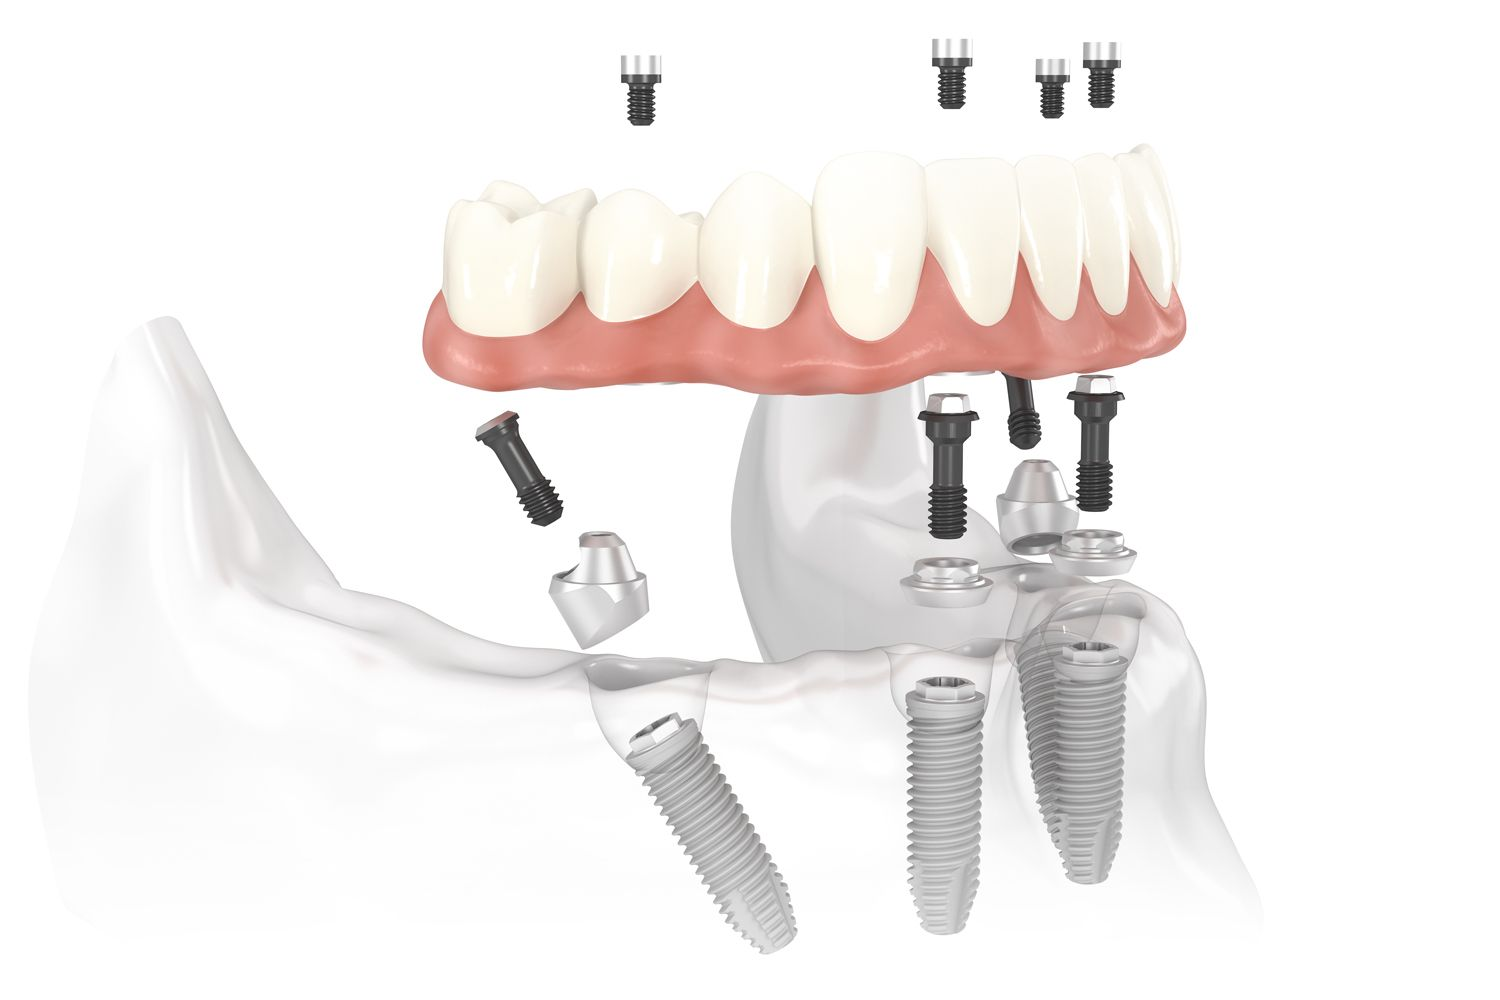 Mandibular All-on-4 dental implants tilted 45°